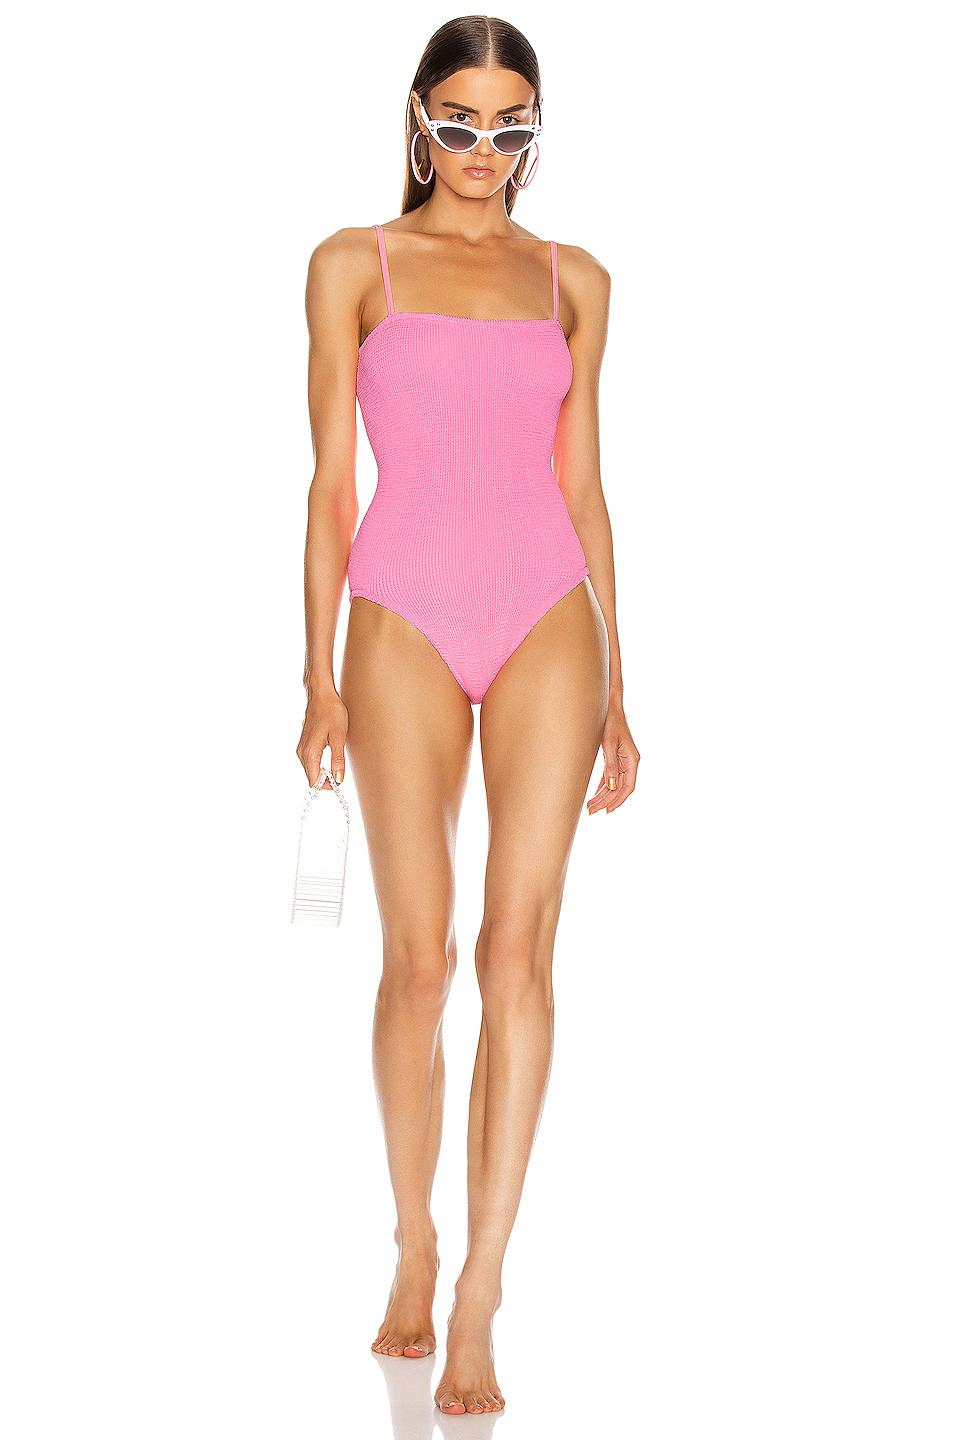 The Hunza G Maria Swimsuit - as seen on Chrissy Teigen, available at Forward, $225.